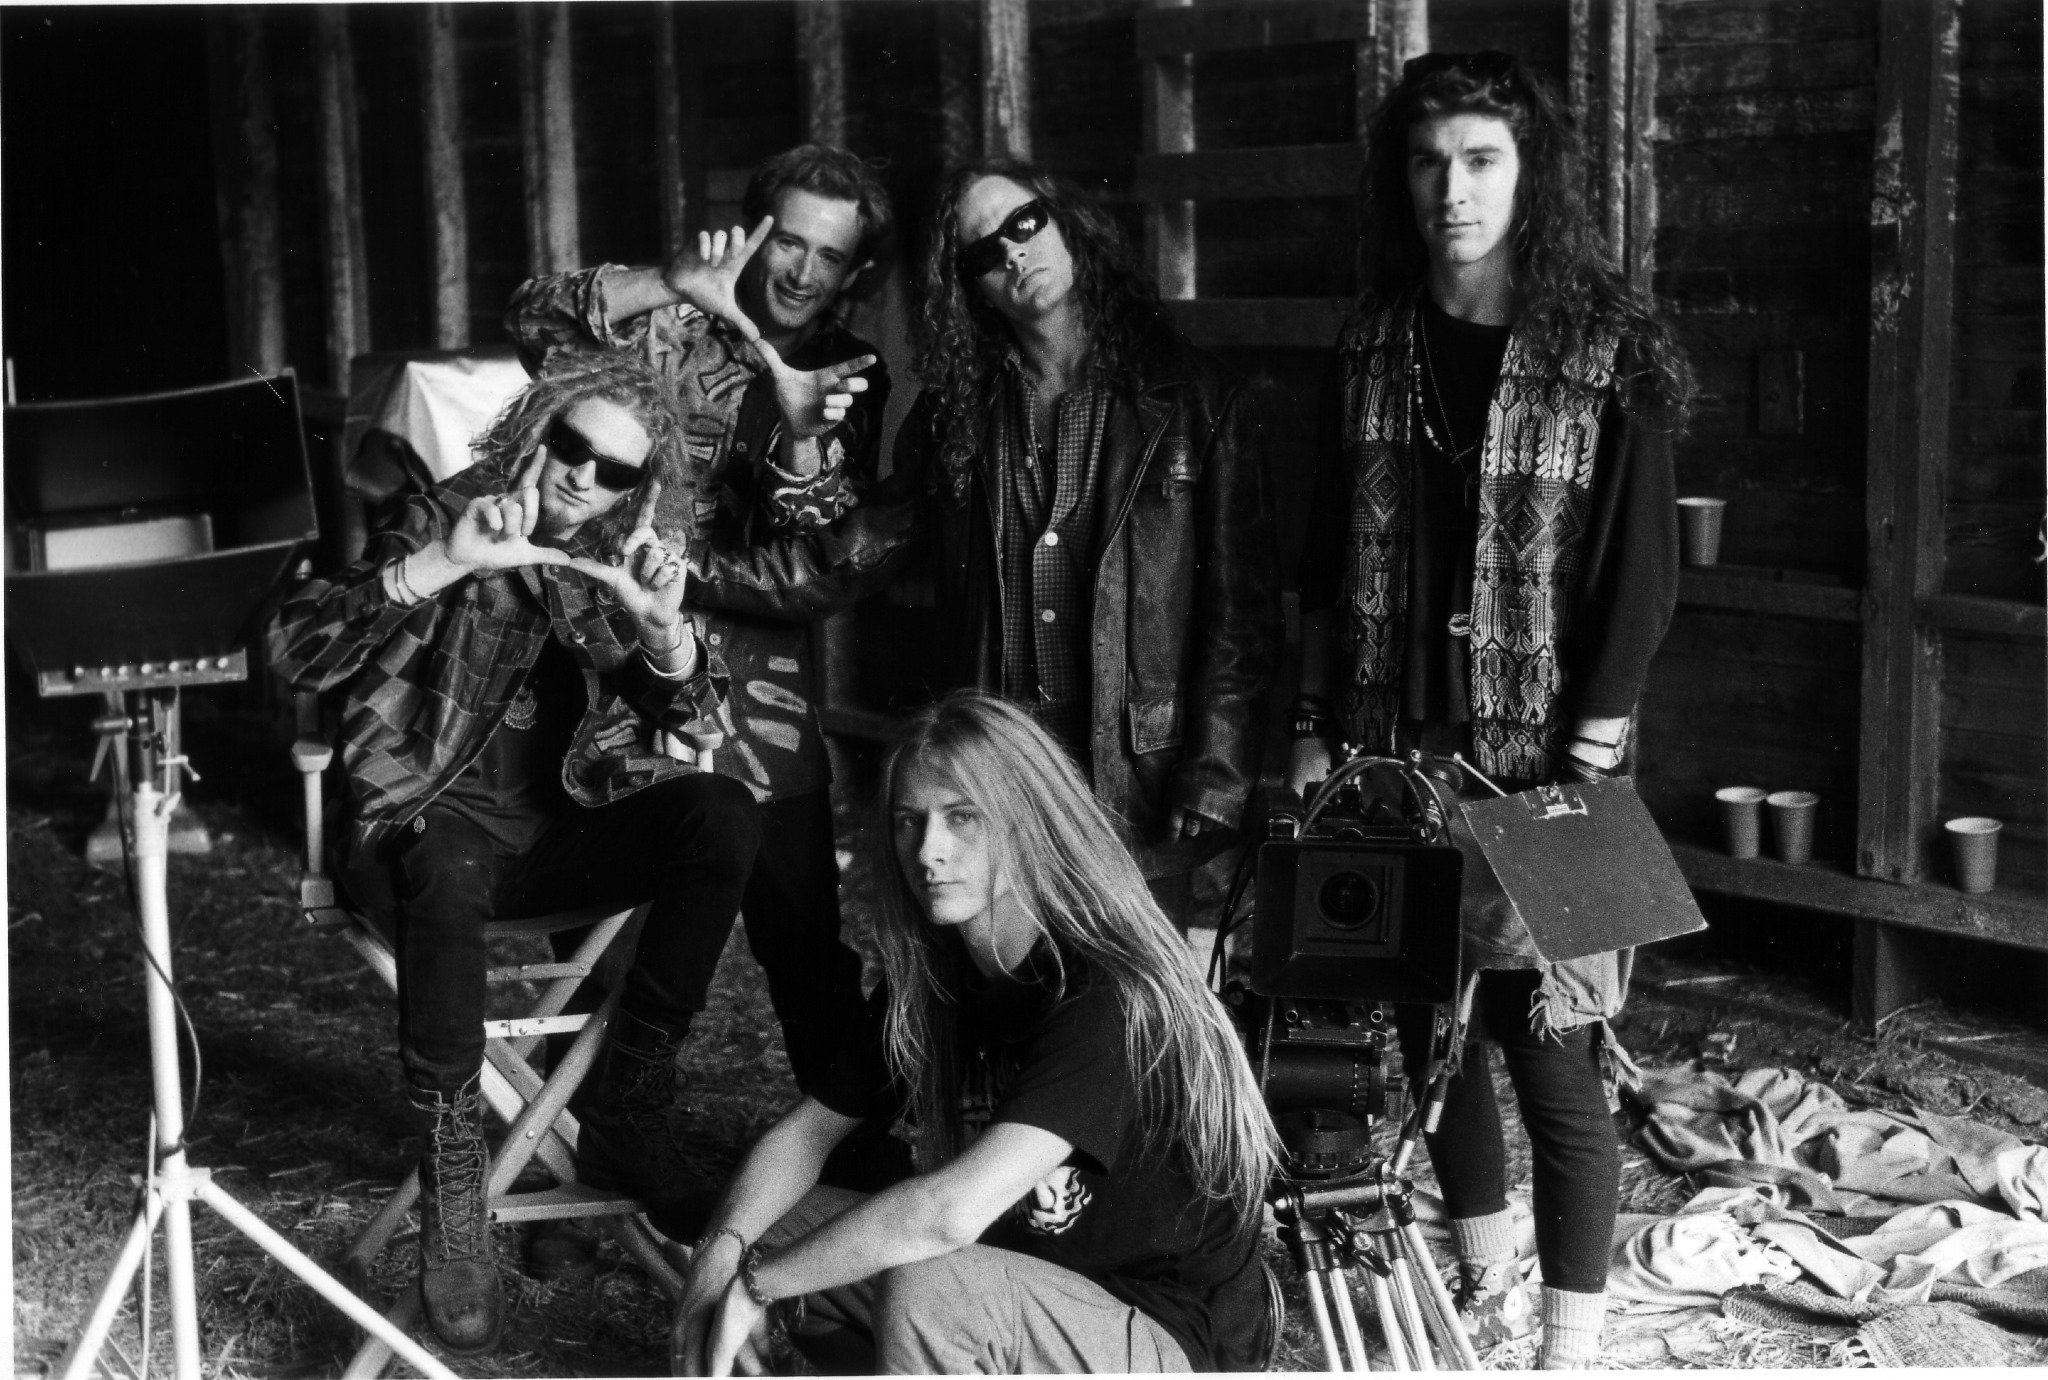 On set Alice in Chains 'Man in the Box' video back in the day RIP Layne Staley and Mike Starr Photo by Bob Gruen http://t.co/DEqUTNkC